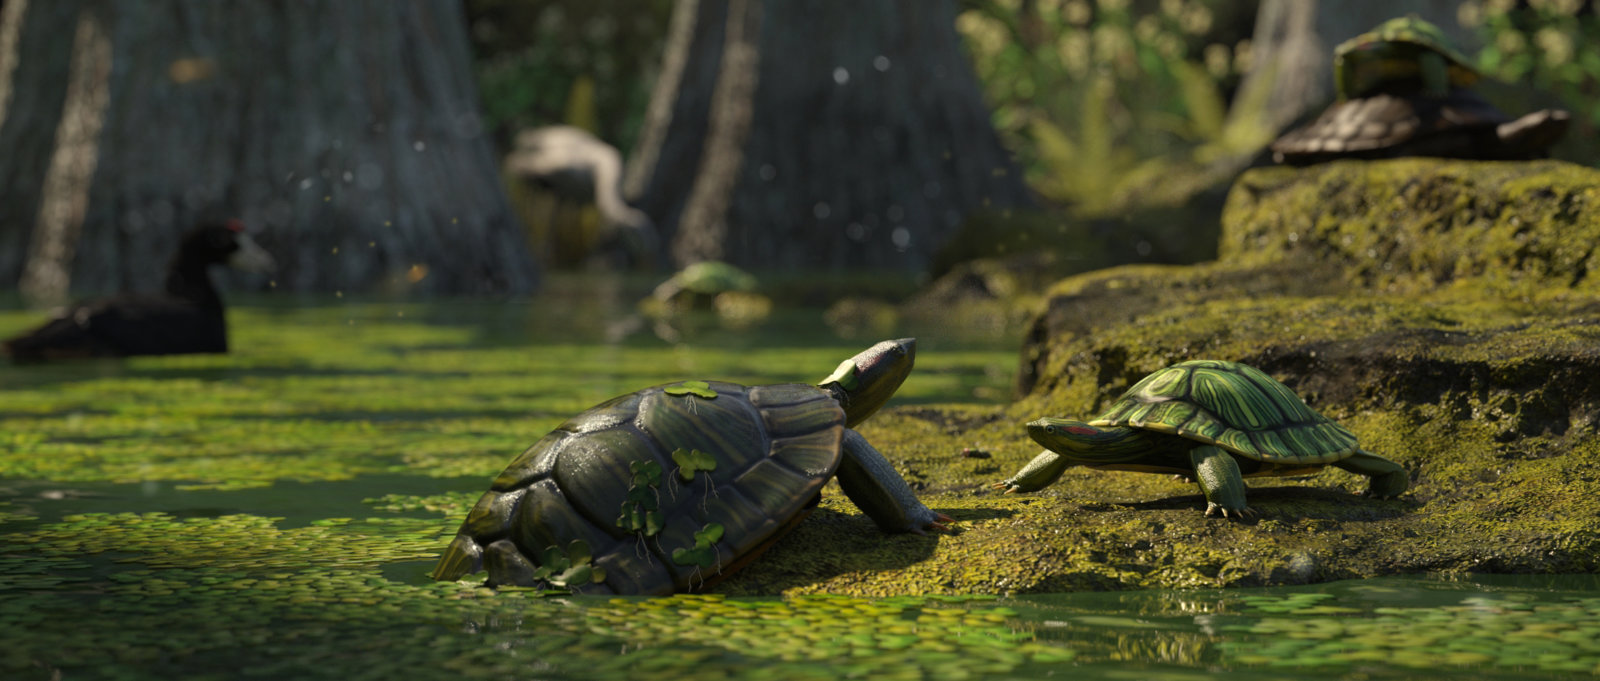 Red Eared Slider 1.jpg